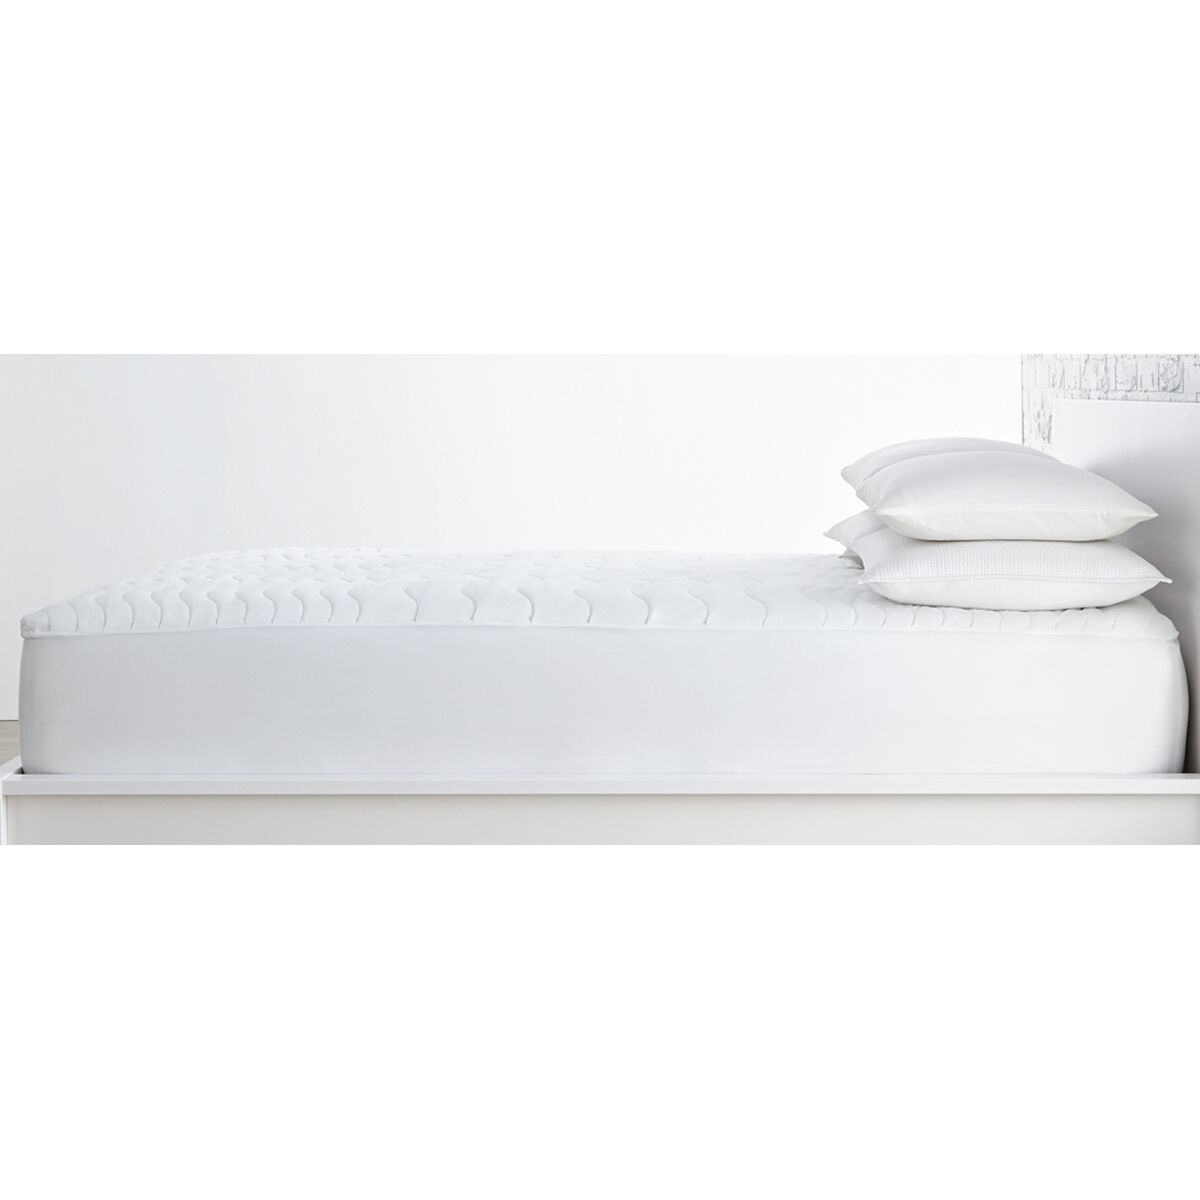 Sunbeam Therapeutic Heated Mattress Pad Queen Size